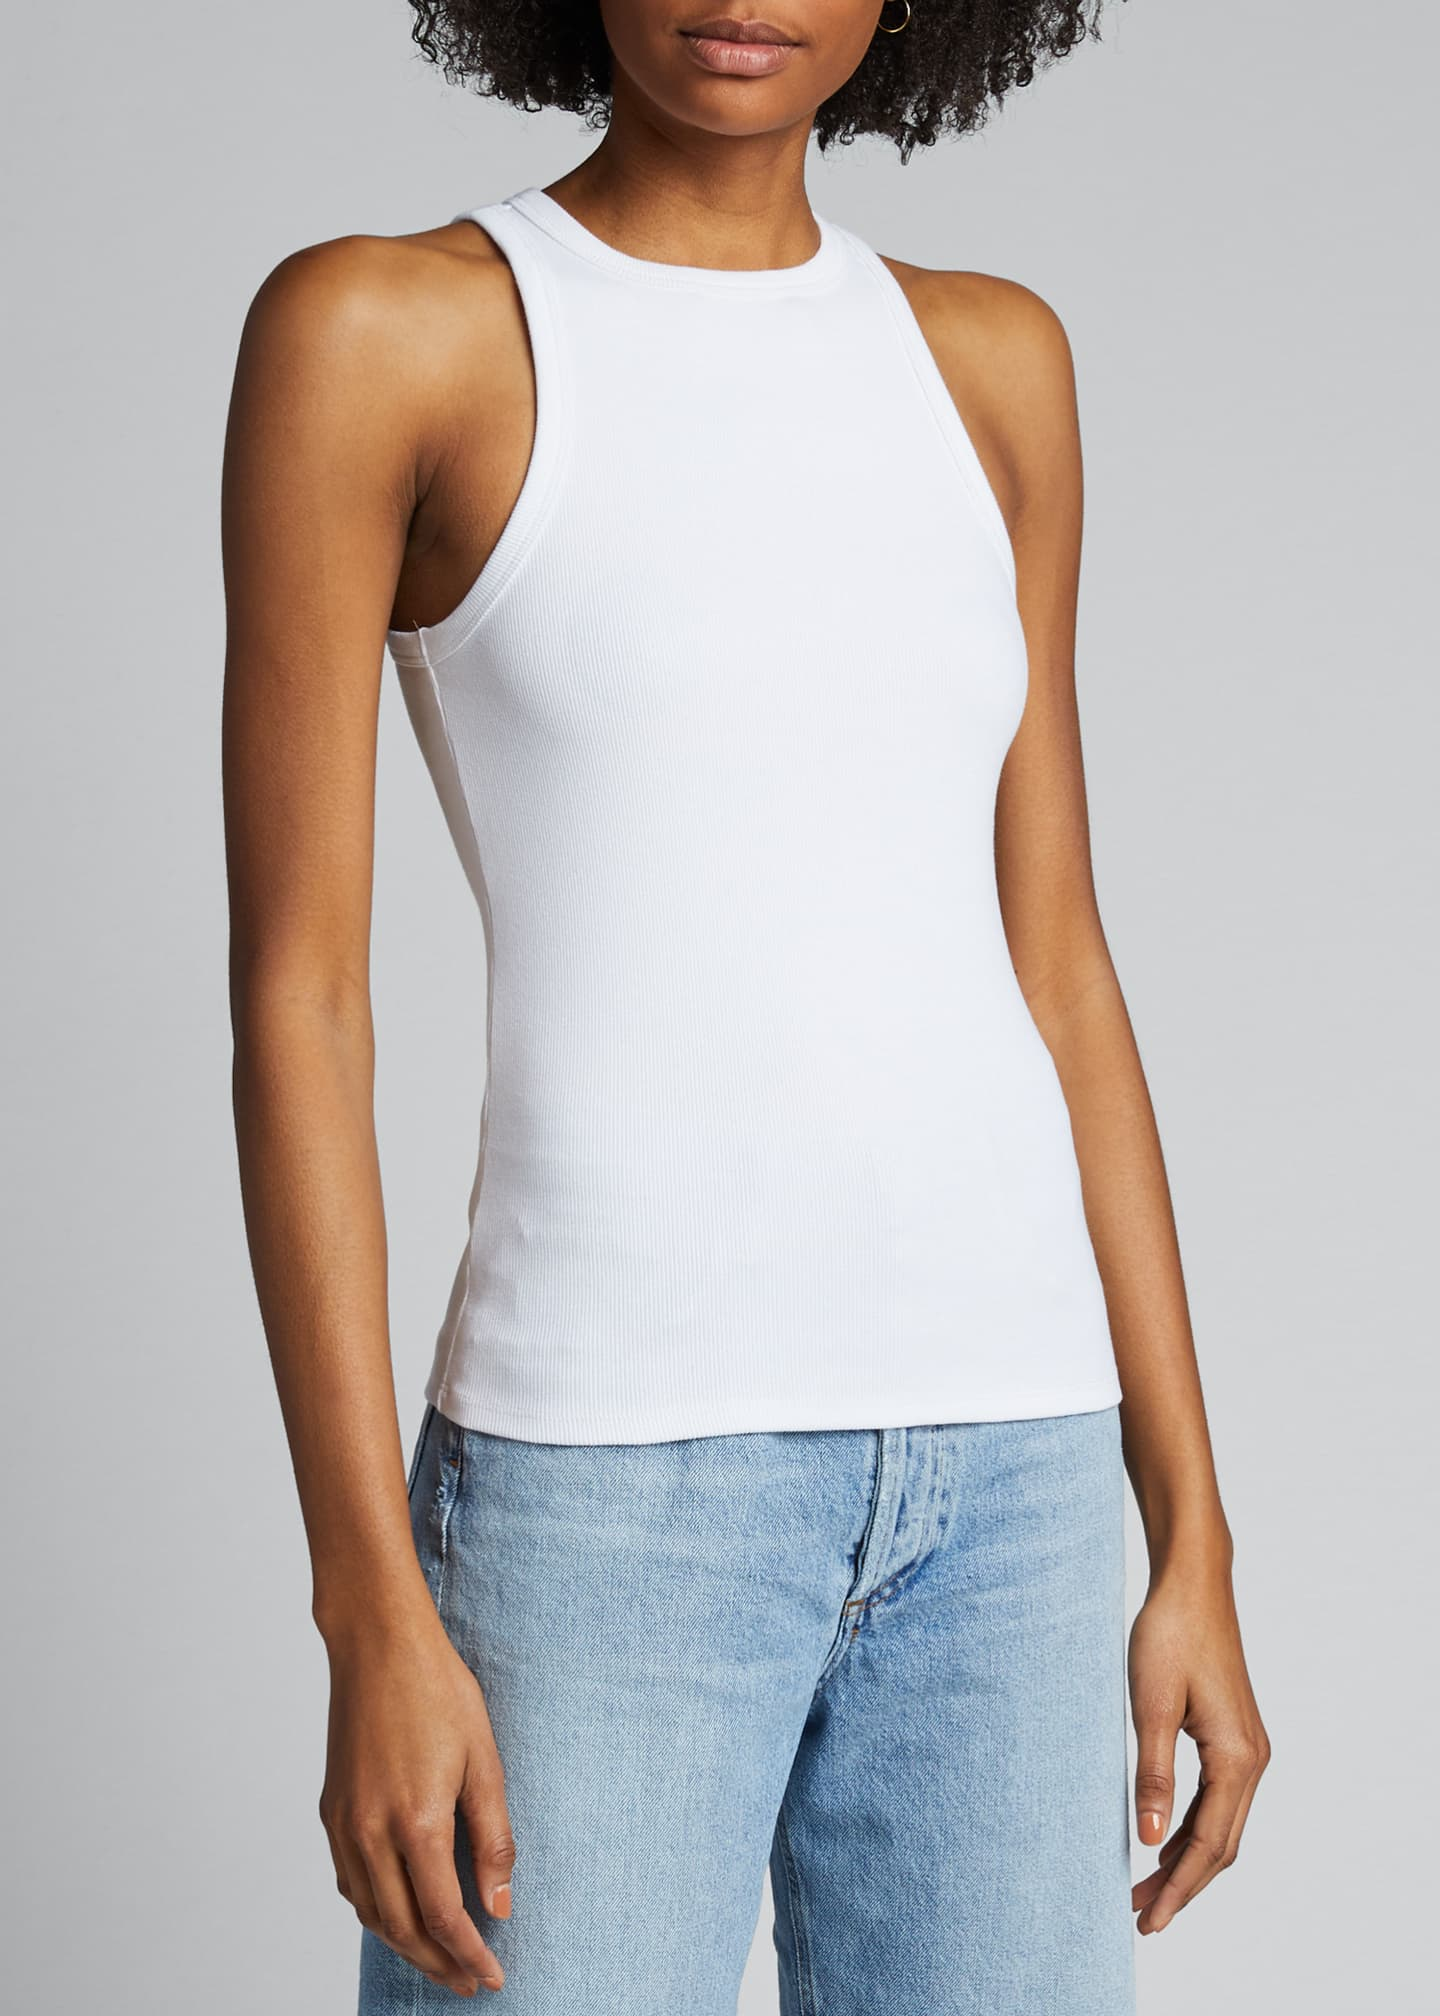 RIB TANK TOP IN WHITE BY AGOLDE